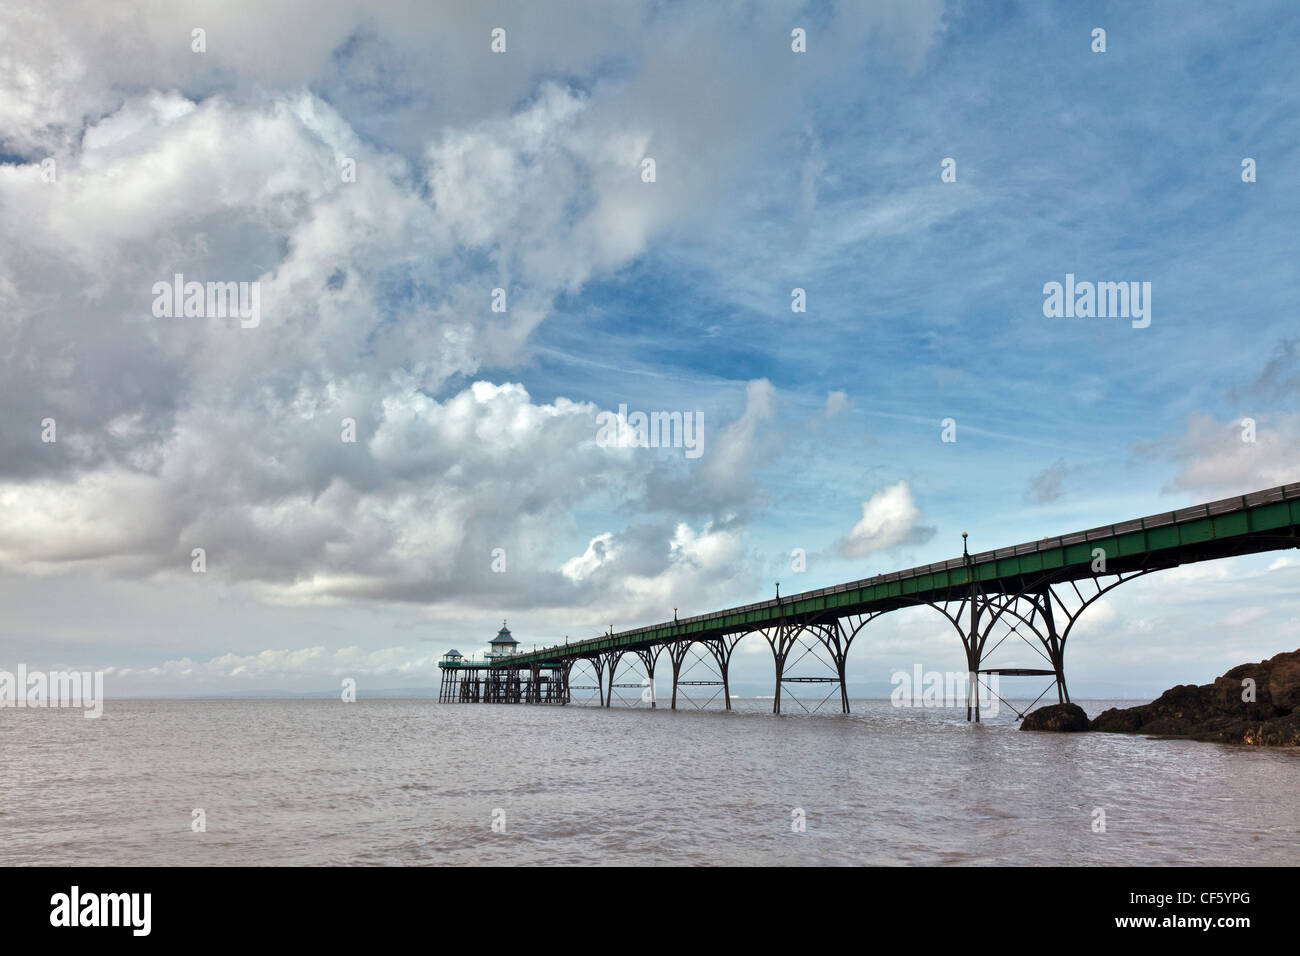 Clevedon Pier, the only fully intact, Grade 1 listed pier in the country, stretching out into the River Severn estuary. Stock Photo